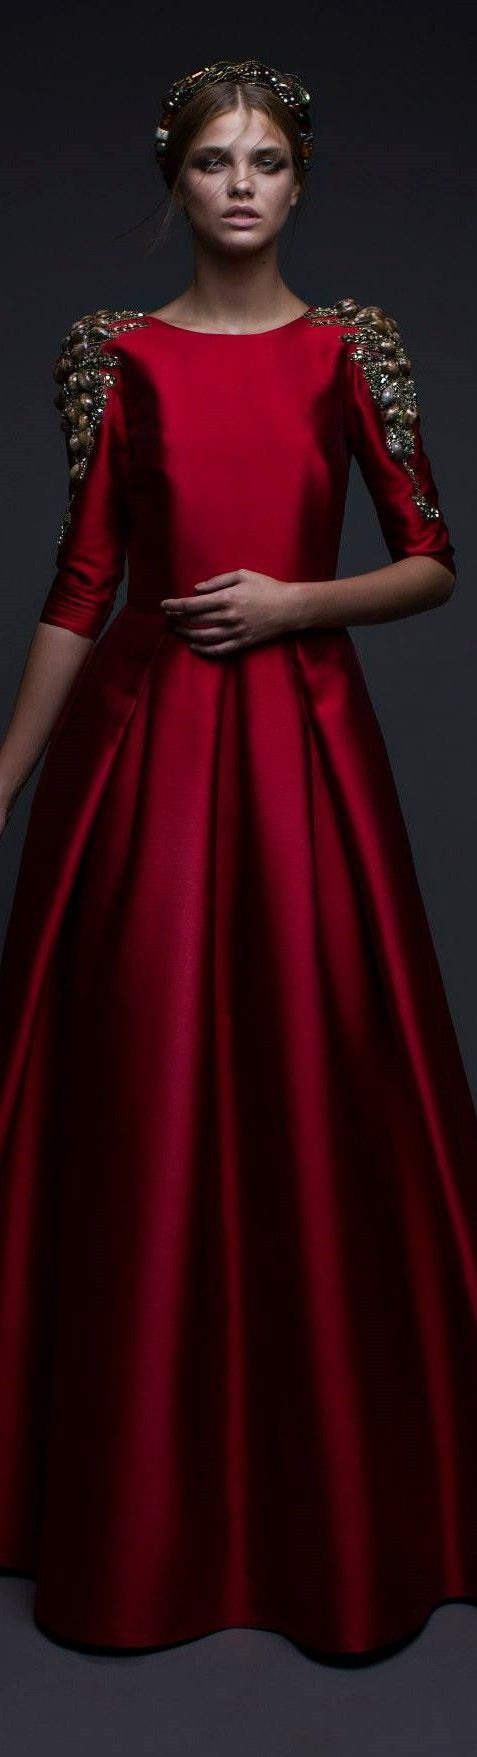 CultureCOUTURE: Chana Marelus FW 2015/16 ... - Stereo CULTURE Society